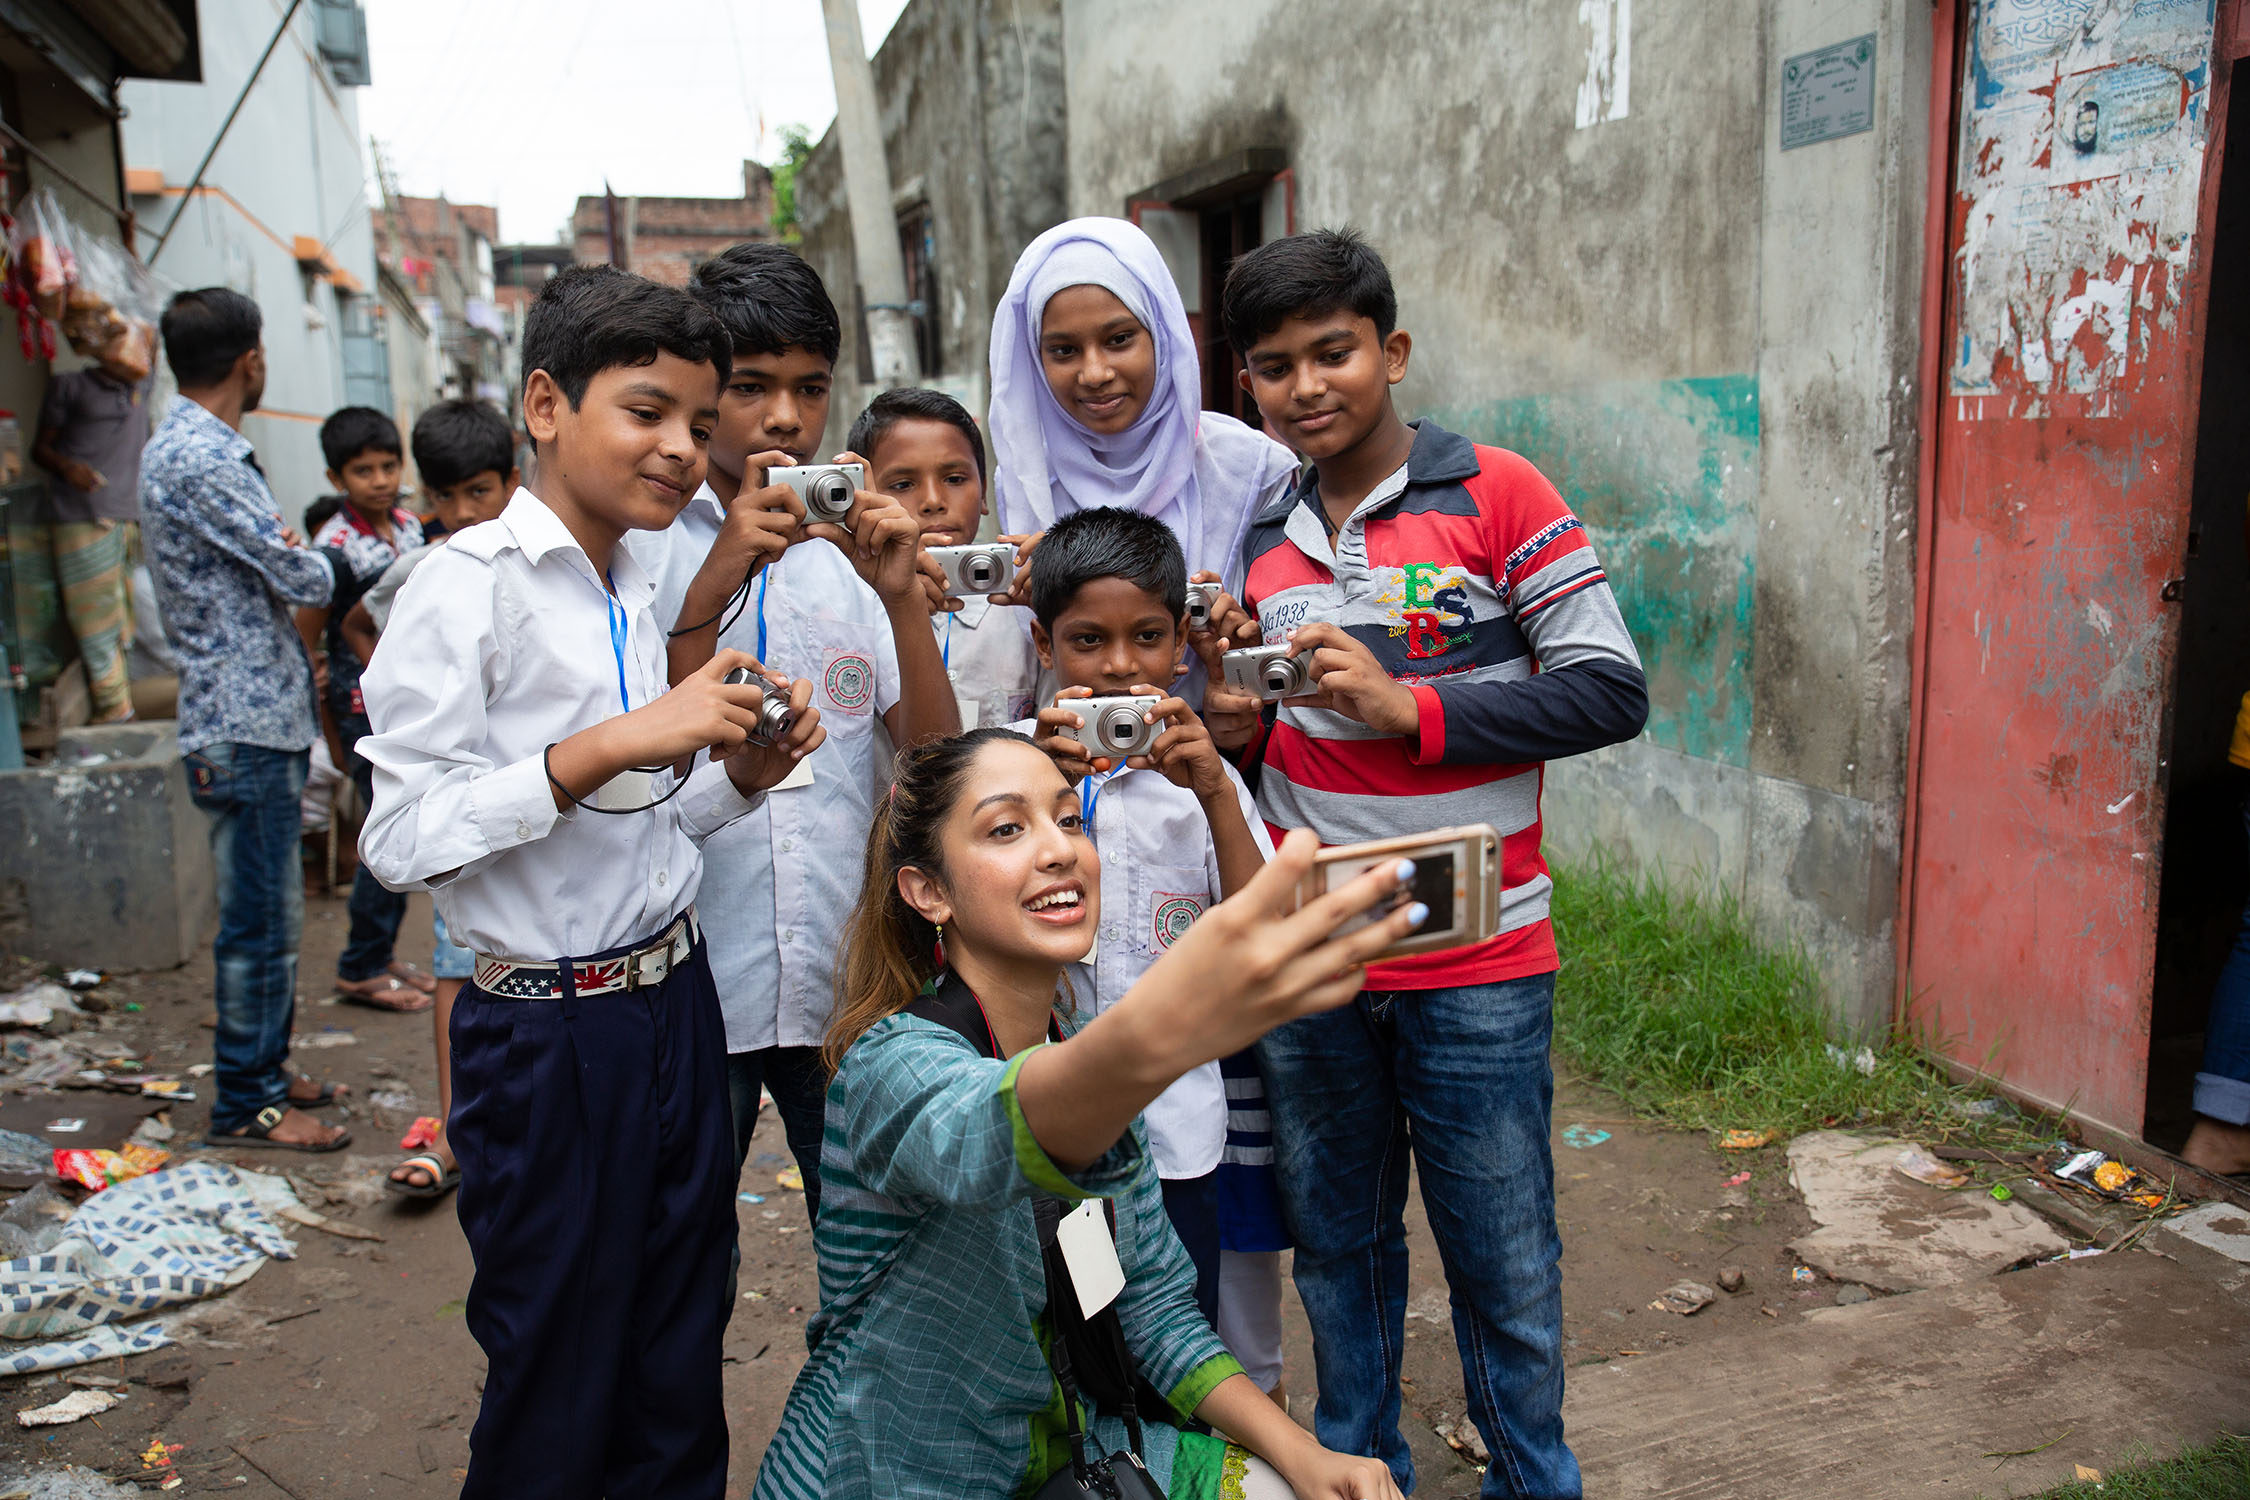 Snapshot Project Leader, Sumaiya, takes a selfie with students.